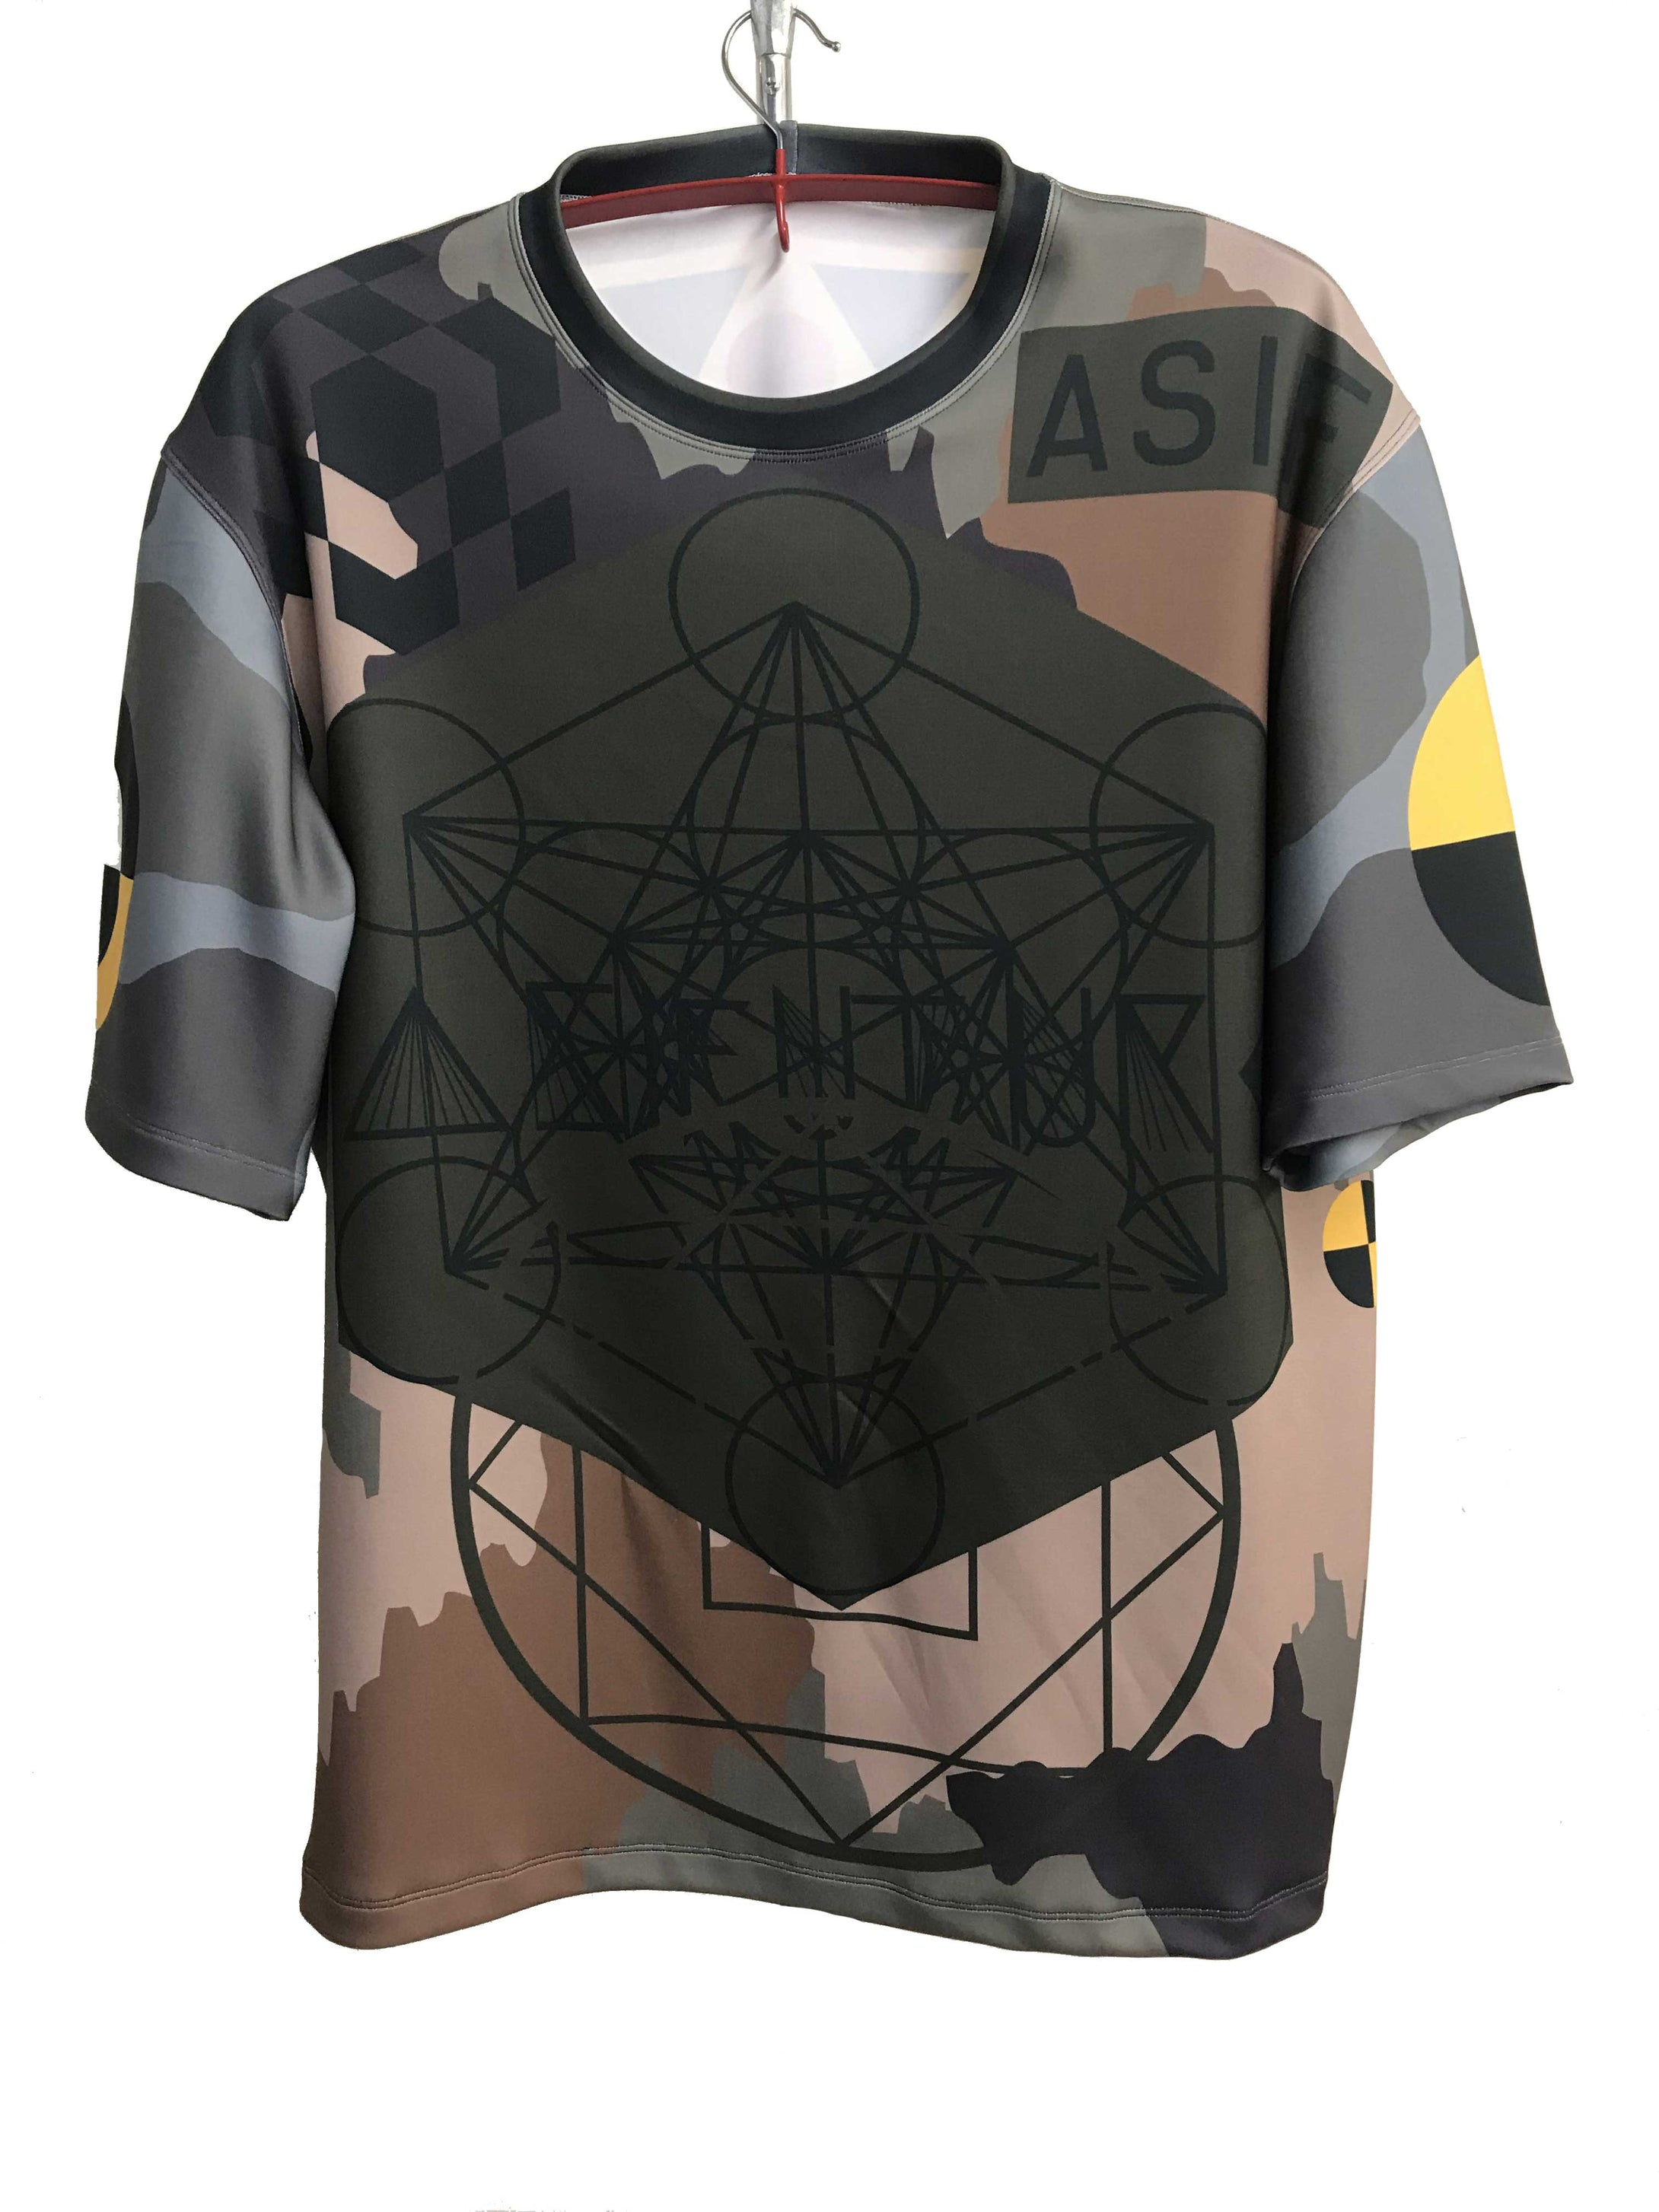 ASIF Deflect Camo Shirt - ASIF (as seen in the future)